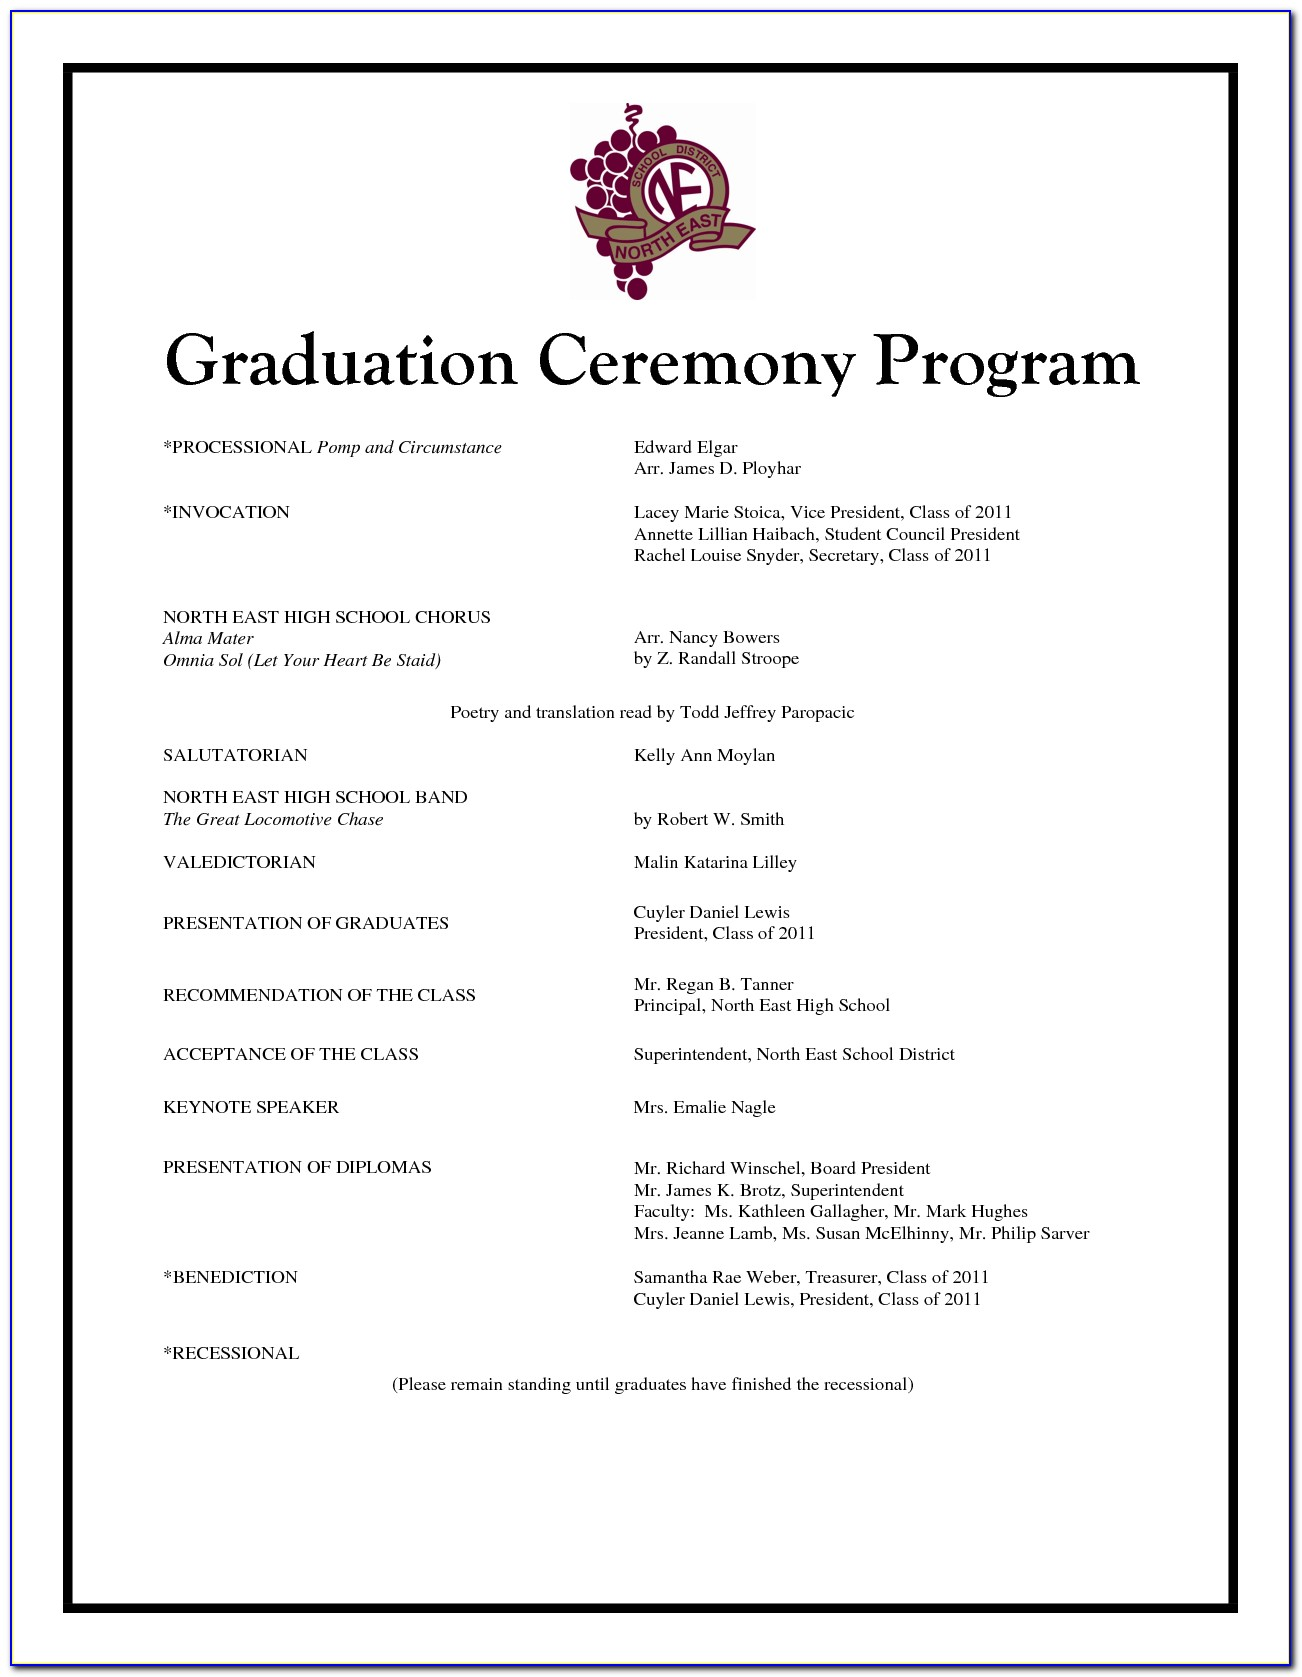 Graduation Ceremony Program Sample